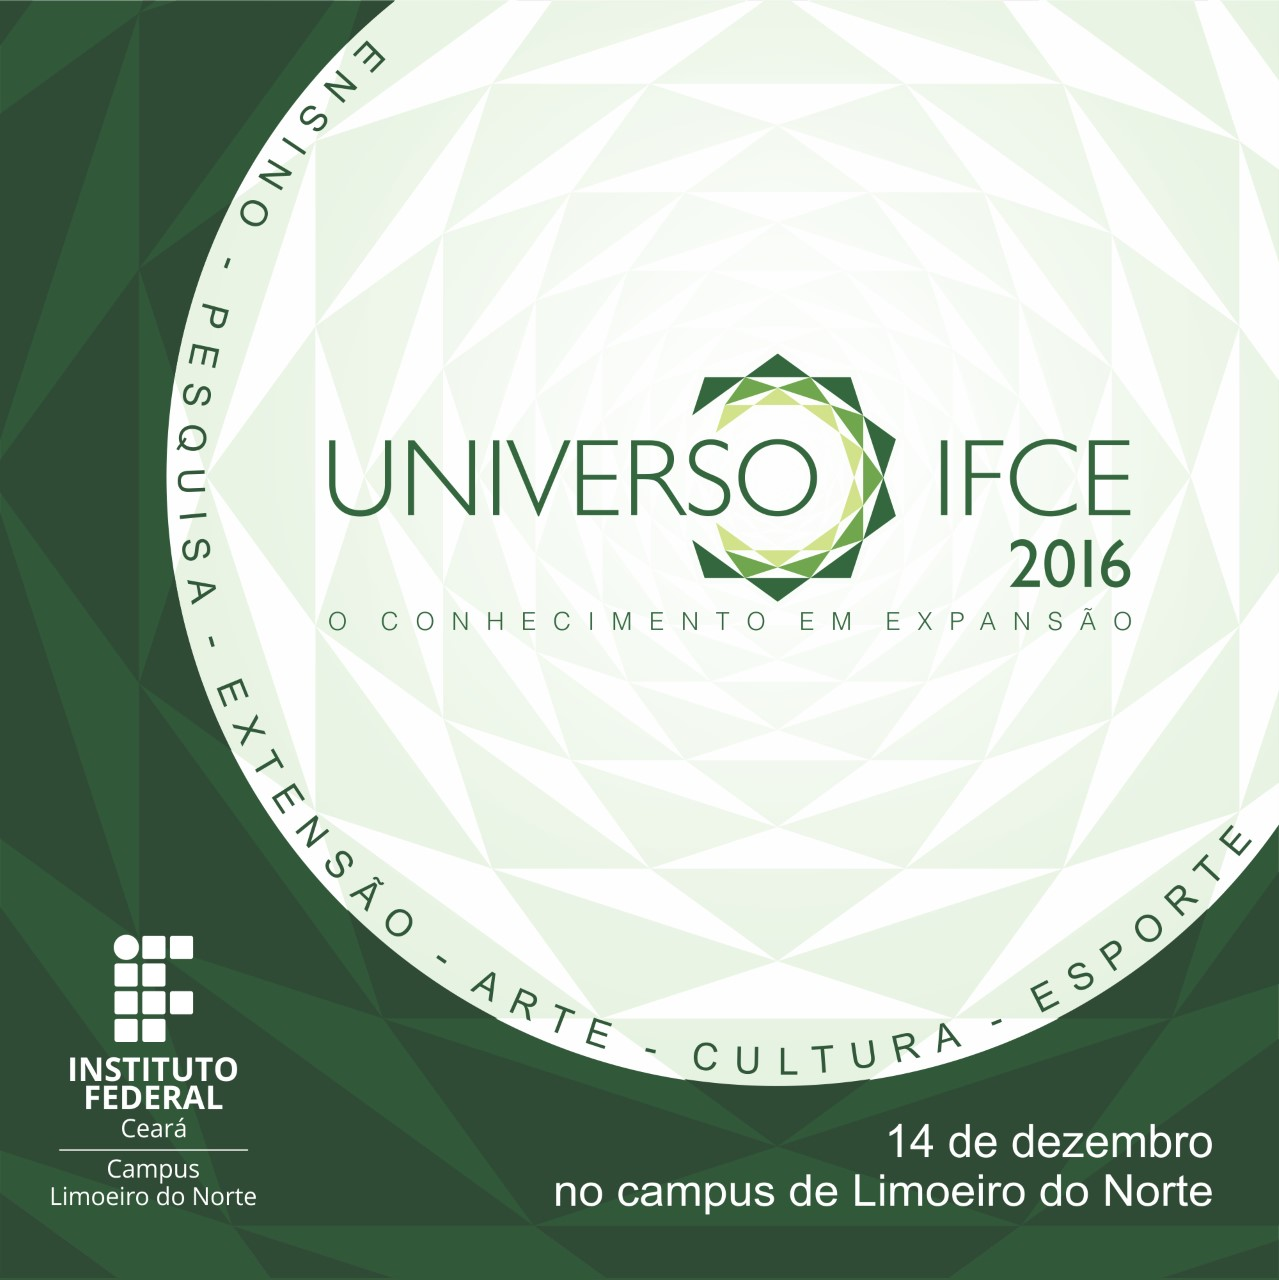 Instituto Federal de Limoeiro do Norte promove Universo IFCE 2016